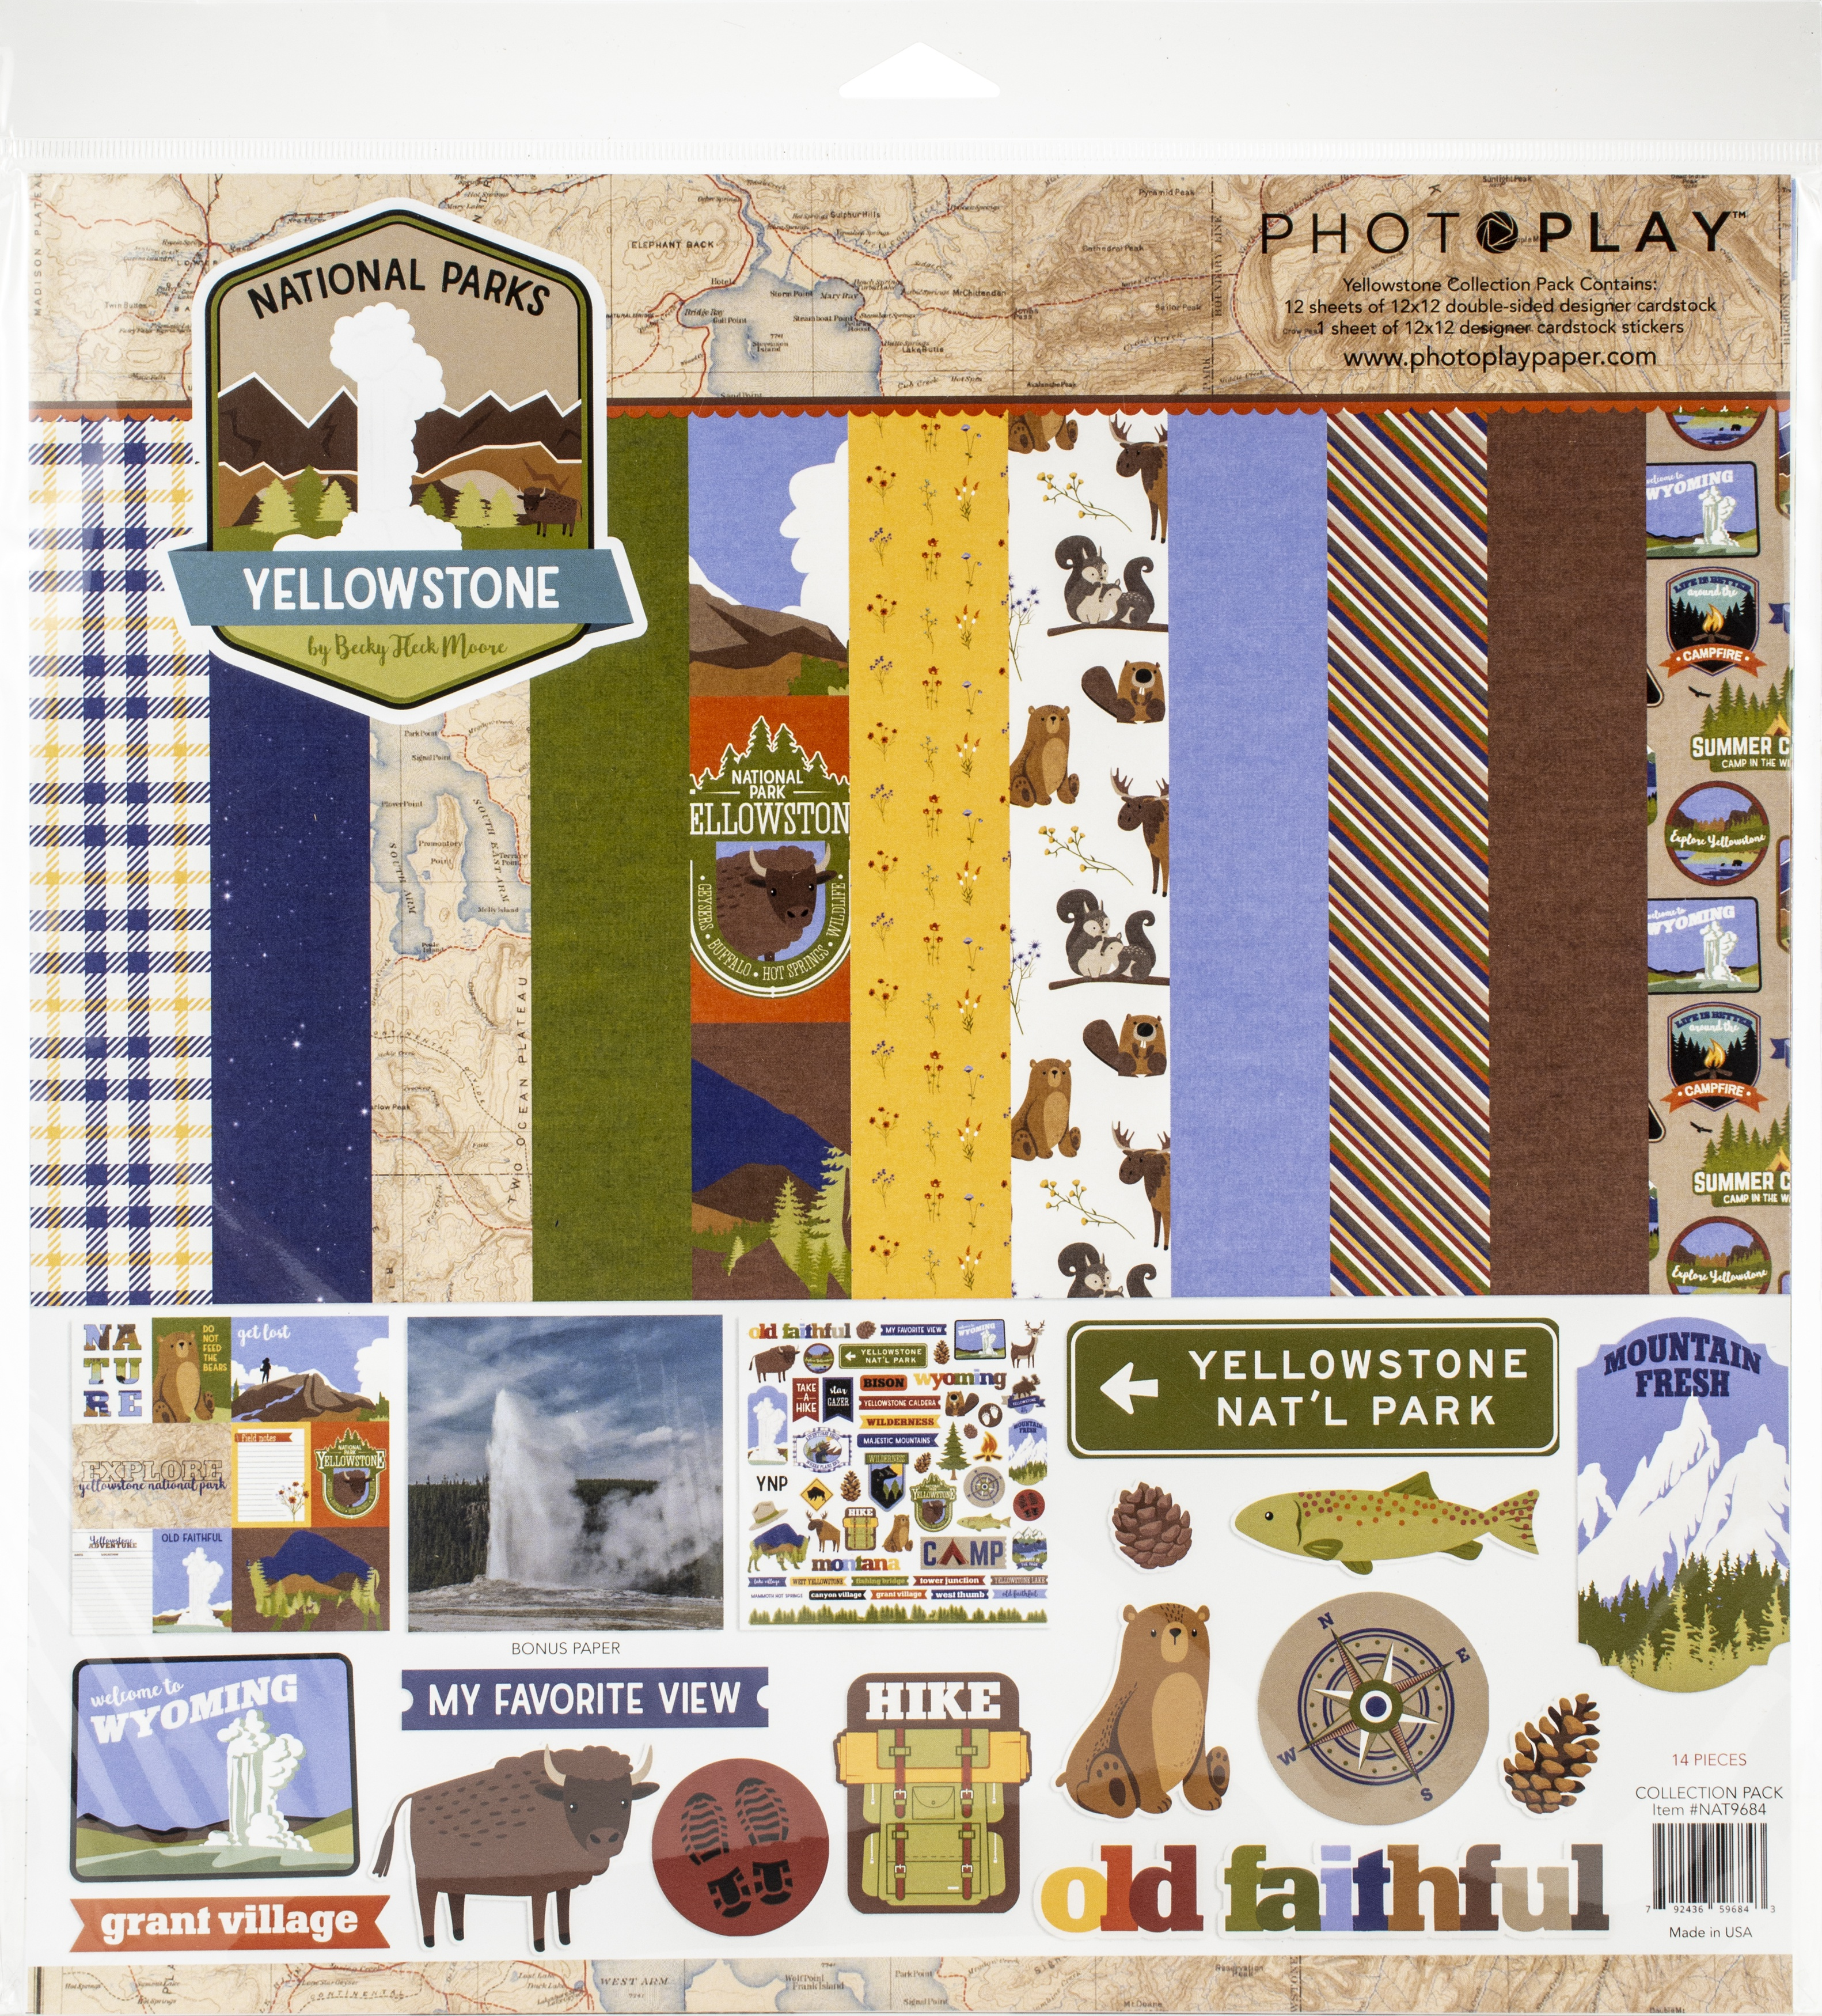 PhotoPlay Collection Pack 12X12-National Parks Yellowstone